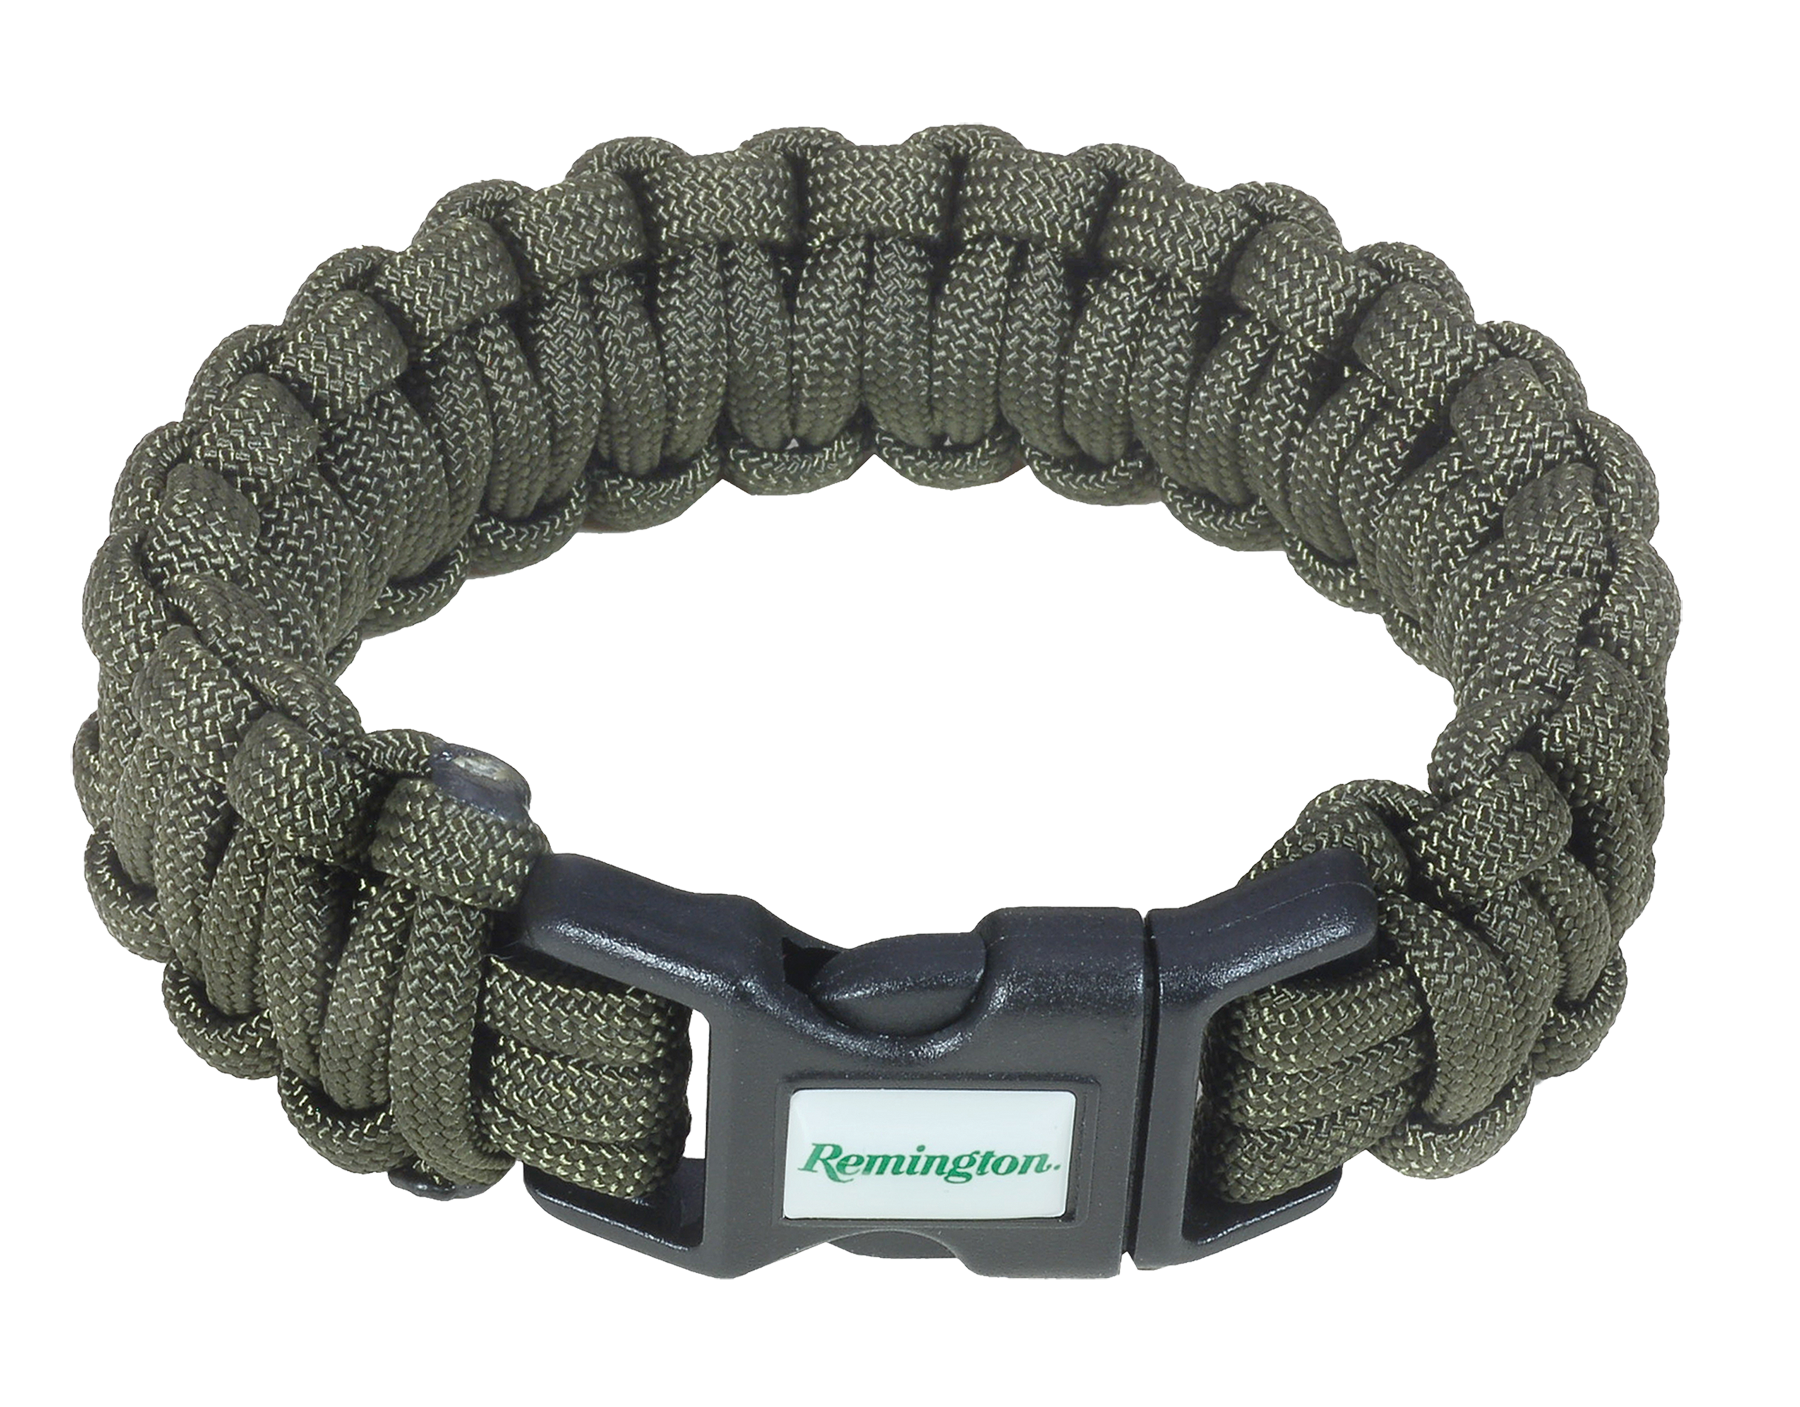 Remington Accessories 17384 Paracord Survival Bracelet 9